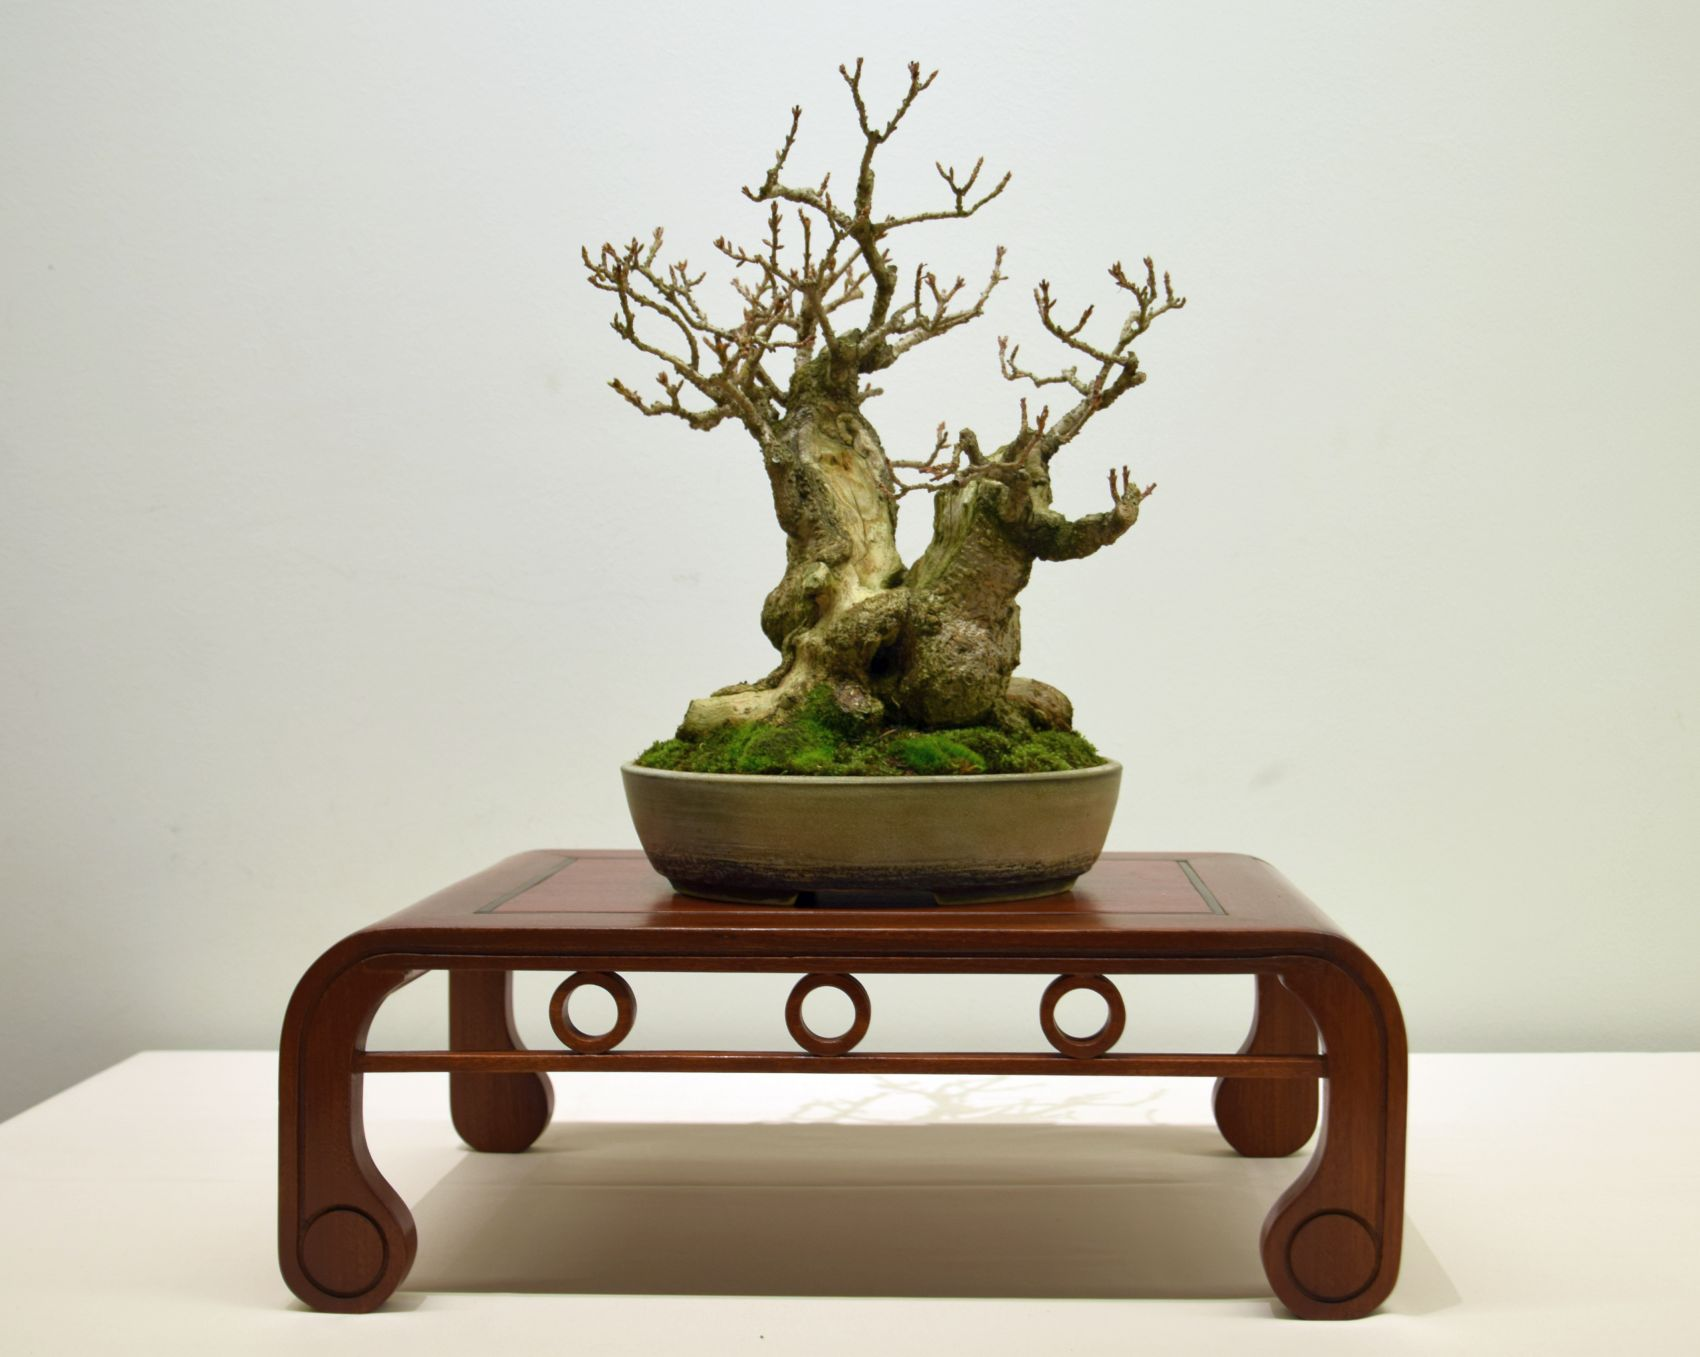 euk-bonsai-ten-2016-club-bonsai-007